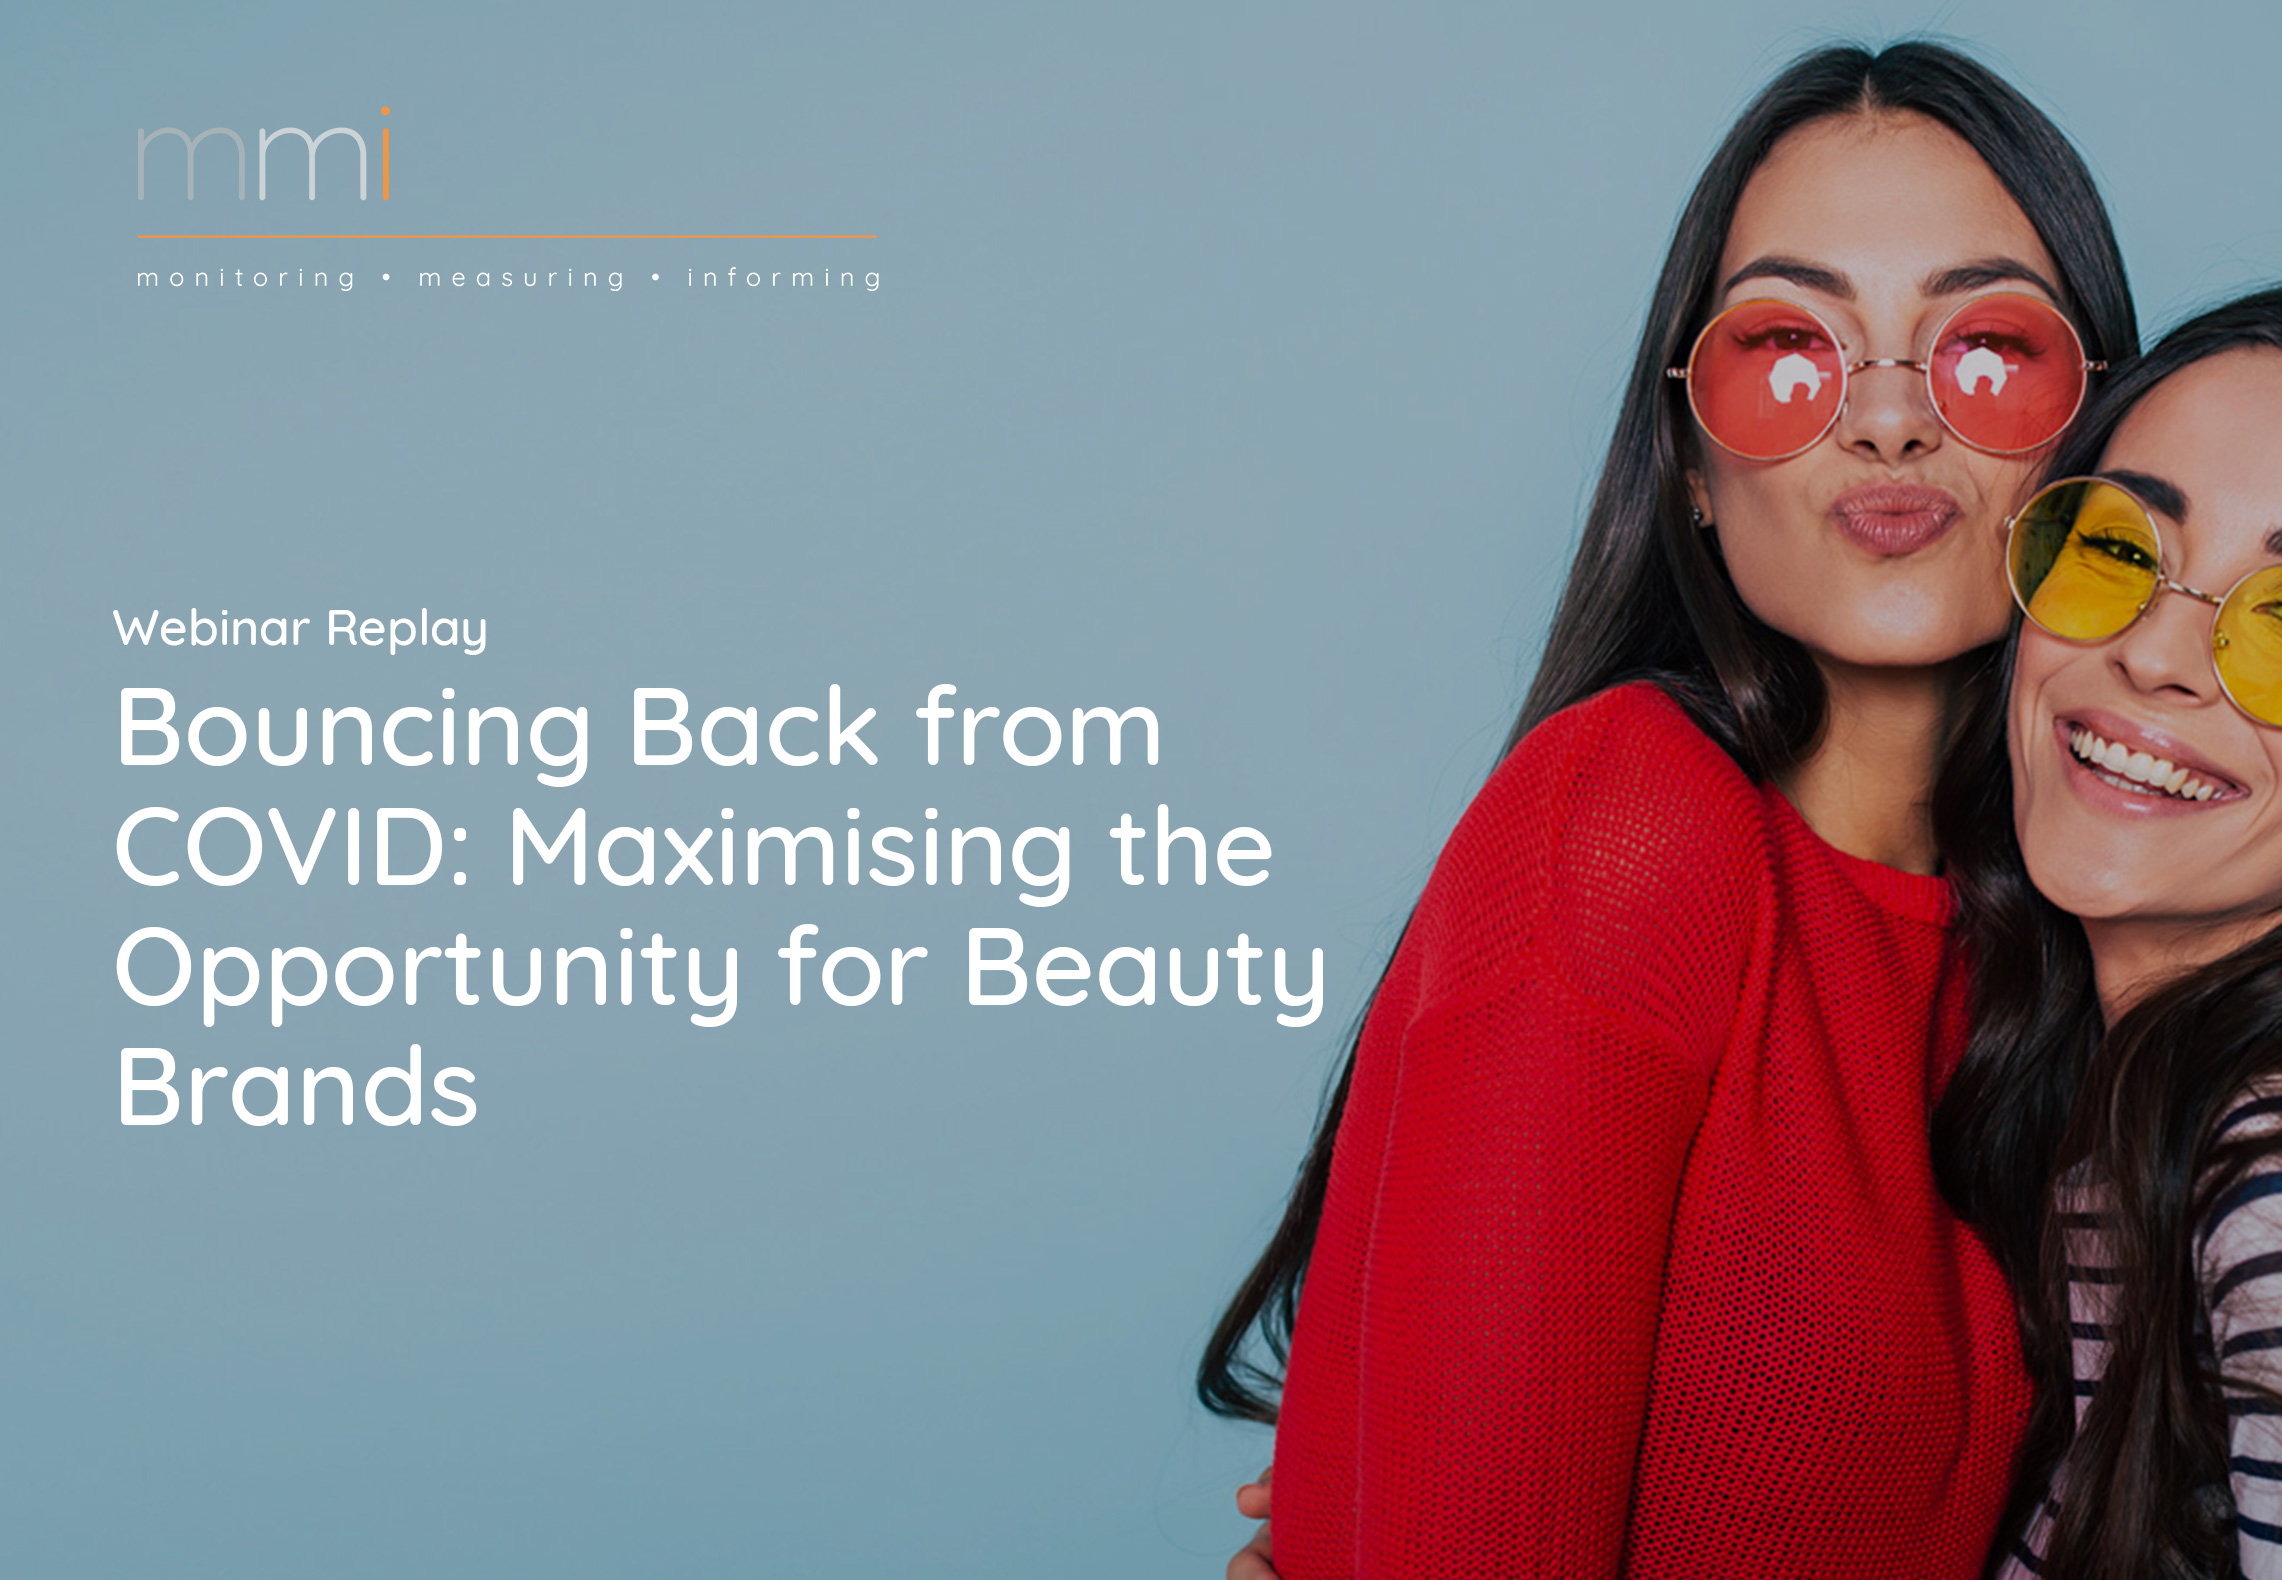 Resources---Bouncing-Back-from--COVID--Maximising-the--Opportunity-for-Beauty--Brands---White